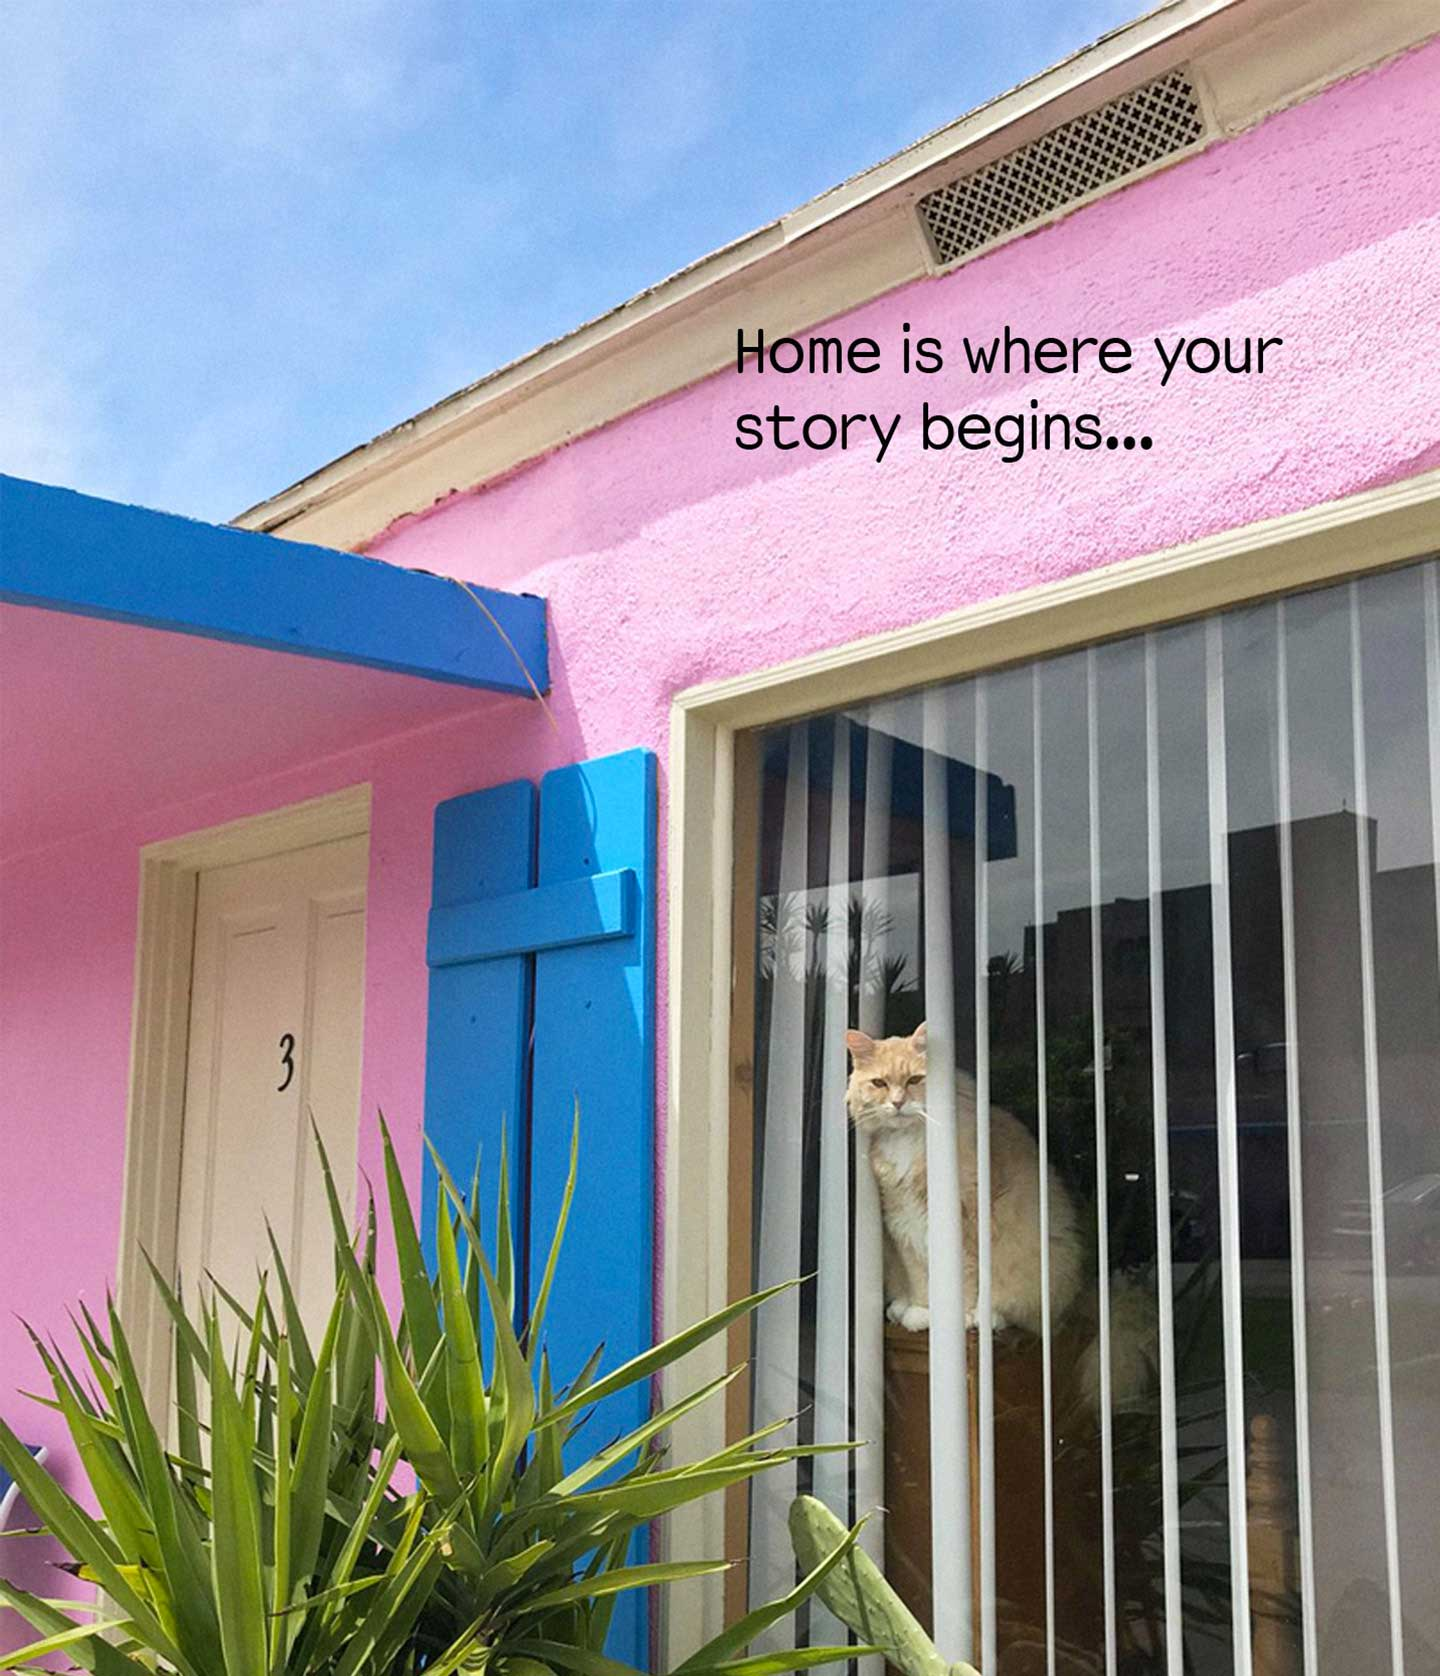 Home is where your story begins ...